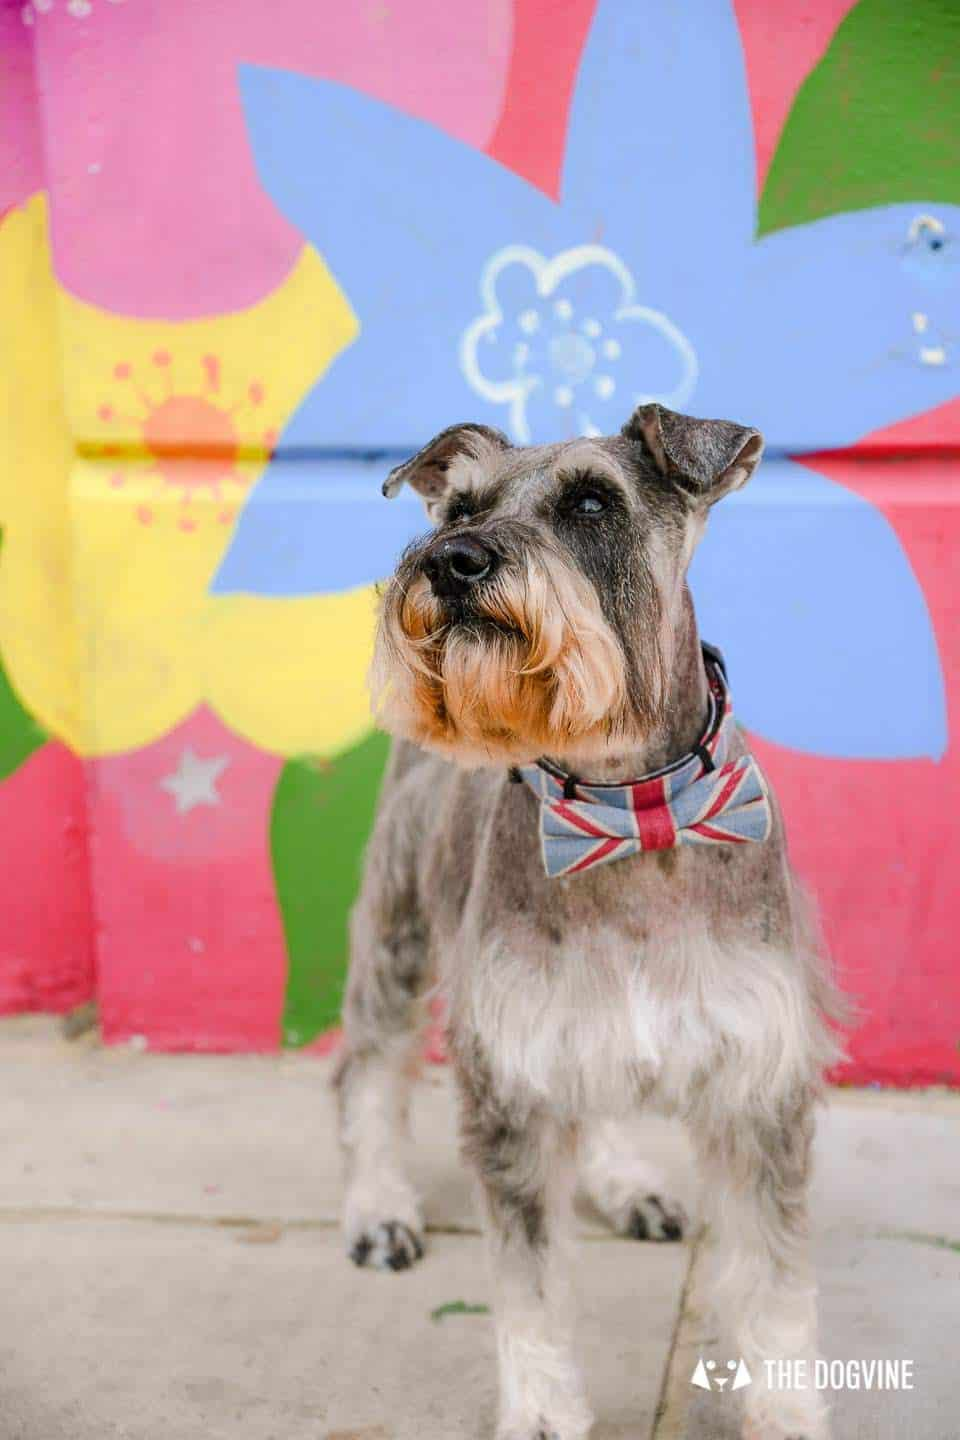 My Dog Friendly London By Pepper Chung the Schnauzer - Dog Friendly Notting Hill 14